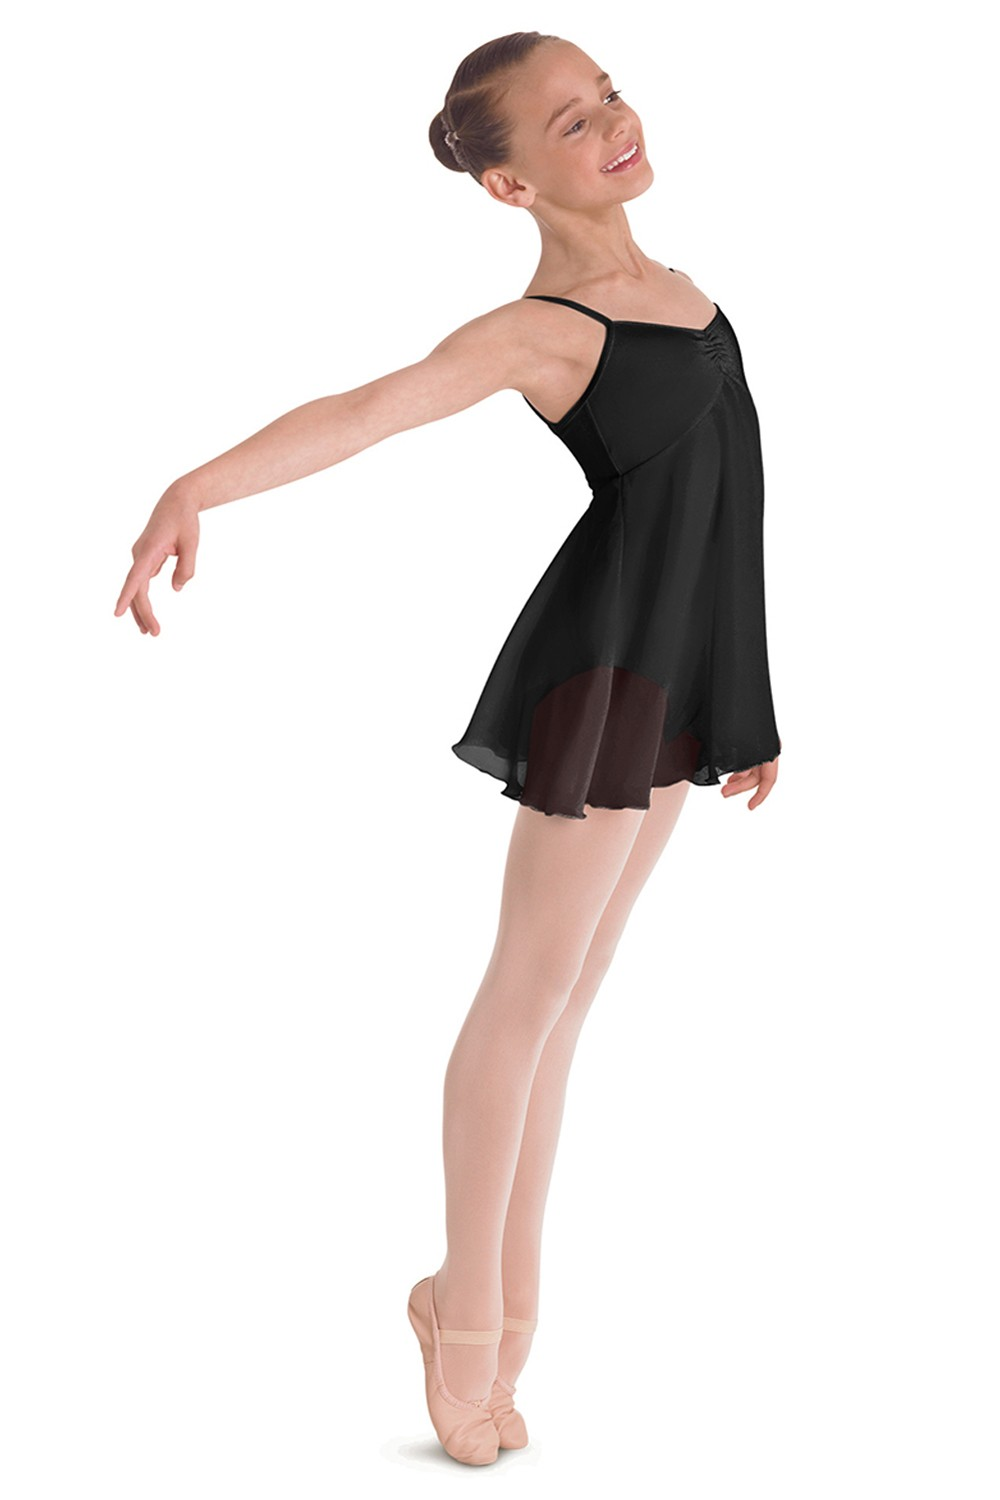 Mesh Dress Children's Dance Leotards